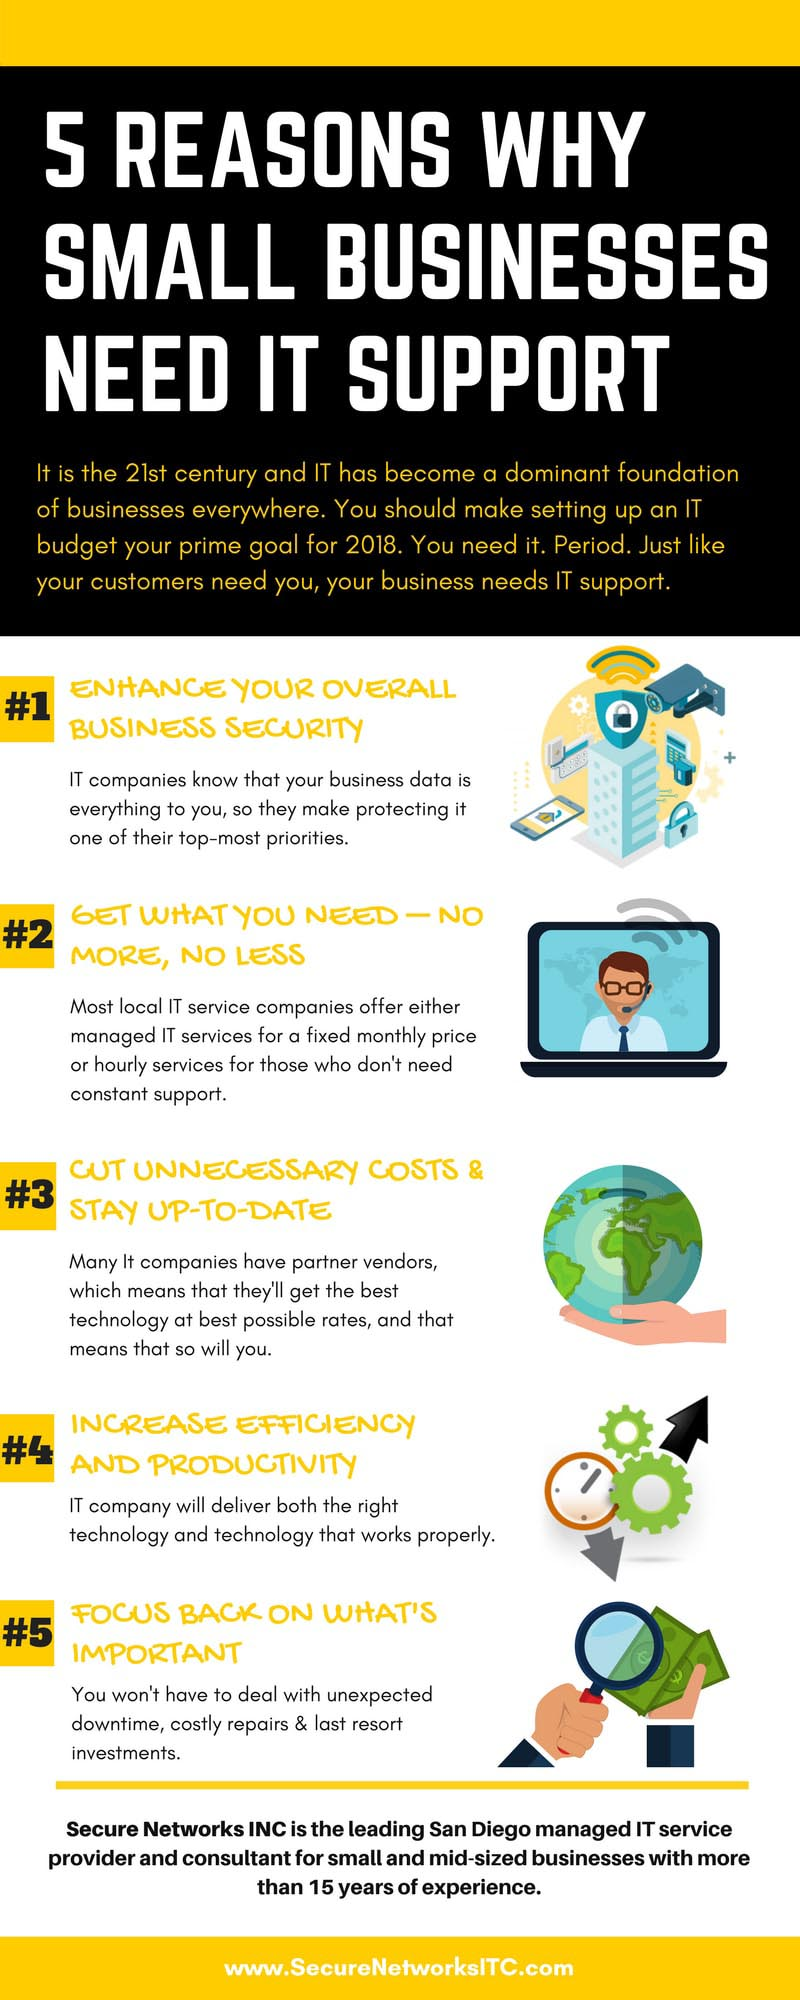 5 REASONS WHY SMALL BUSINESSES NEED IT SUPPORT - Infograpic - Secure Networks INC